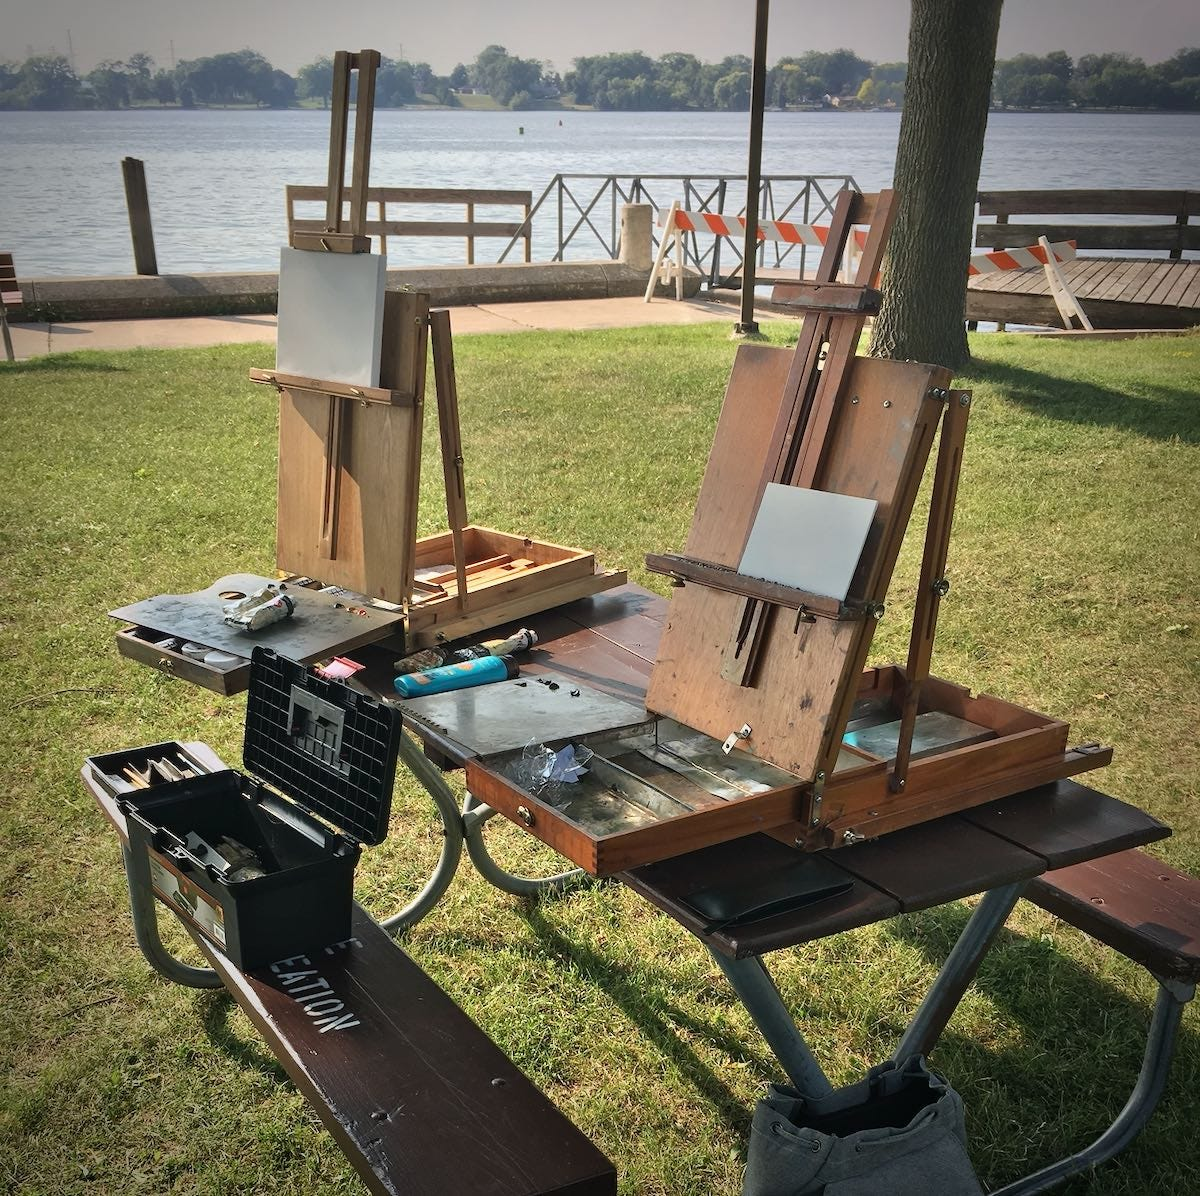 Easels on a picnic table at the park.